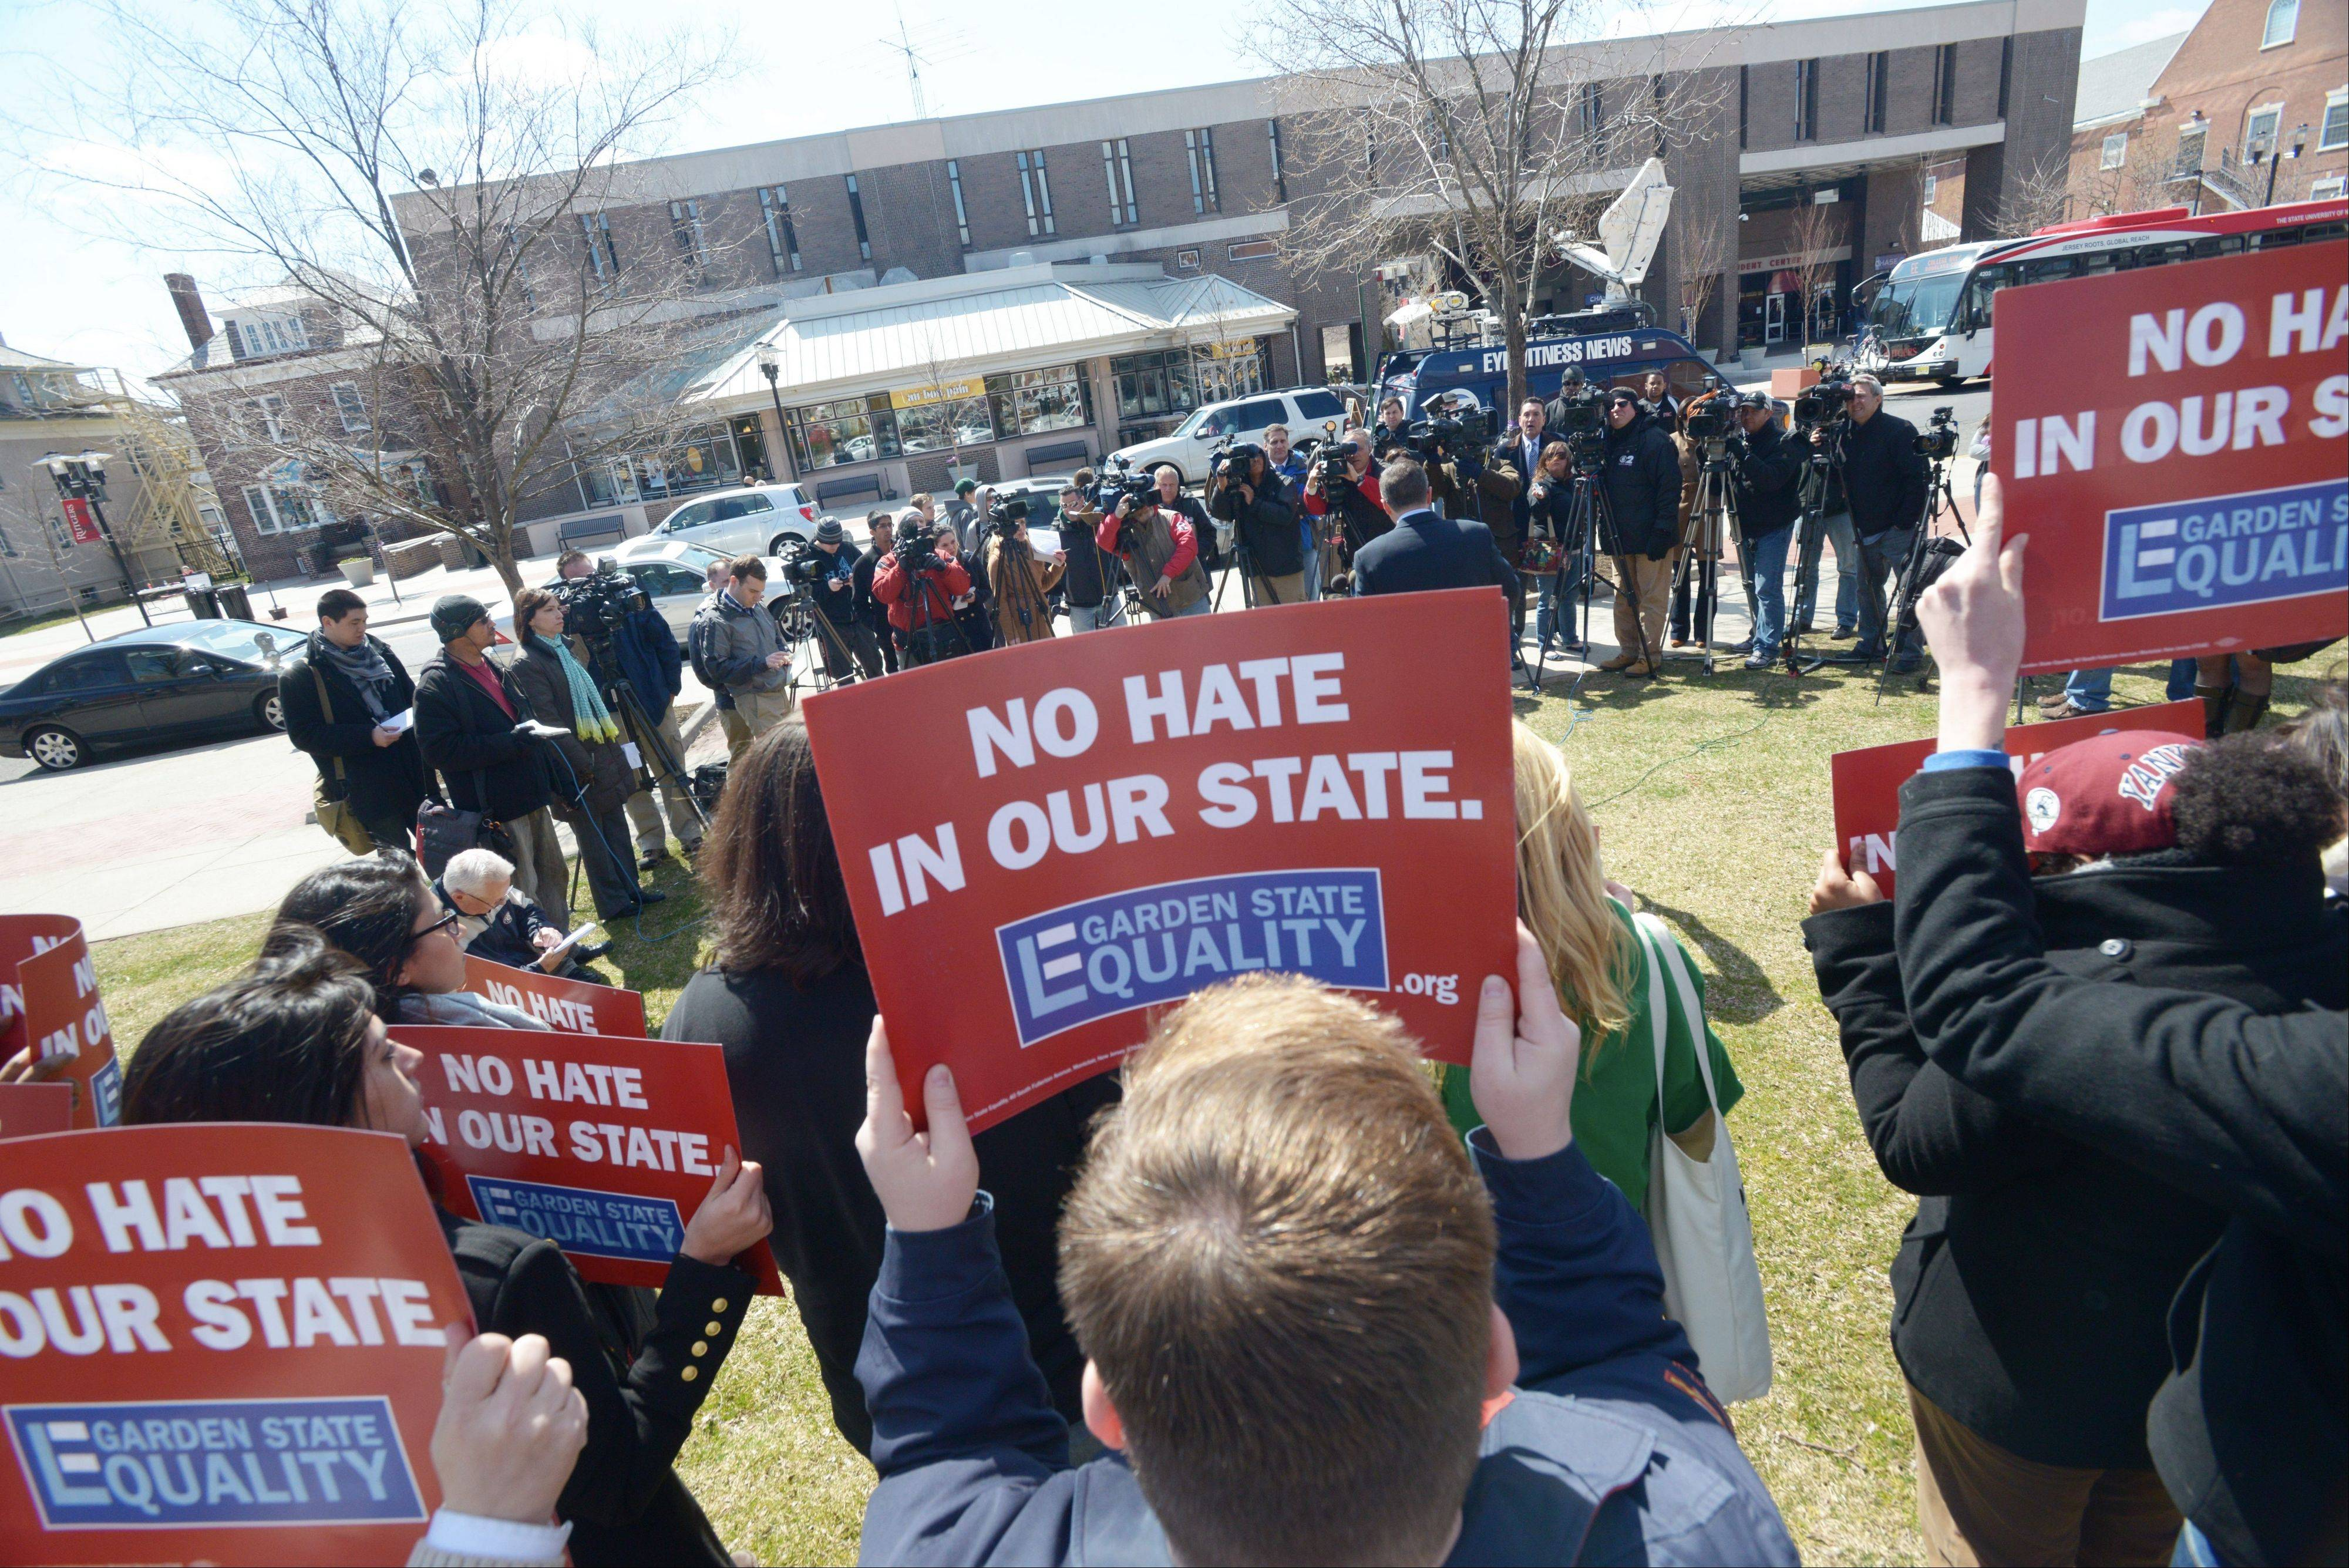 Troy Stevenson, Executive Director of Garden State Equality, organized a demo in New Brunswick, N.J., questioning why the firing of Mike Rice, the coach of Rutgers� men�s basketball team, didn�t happen sooner.